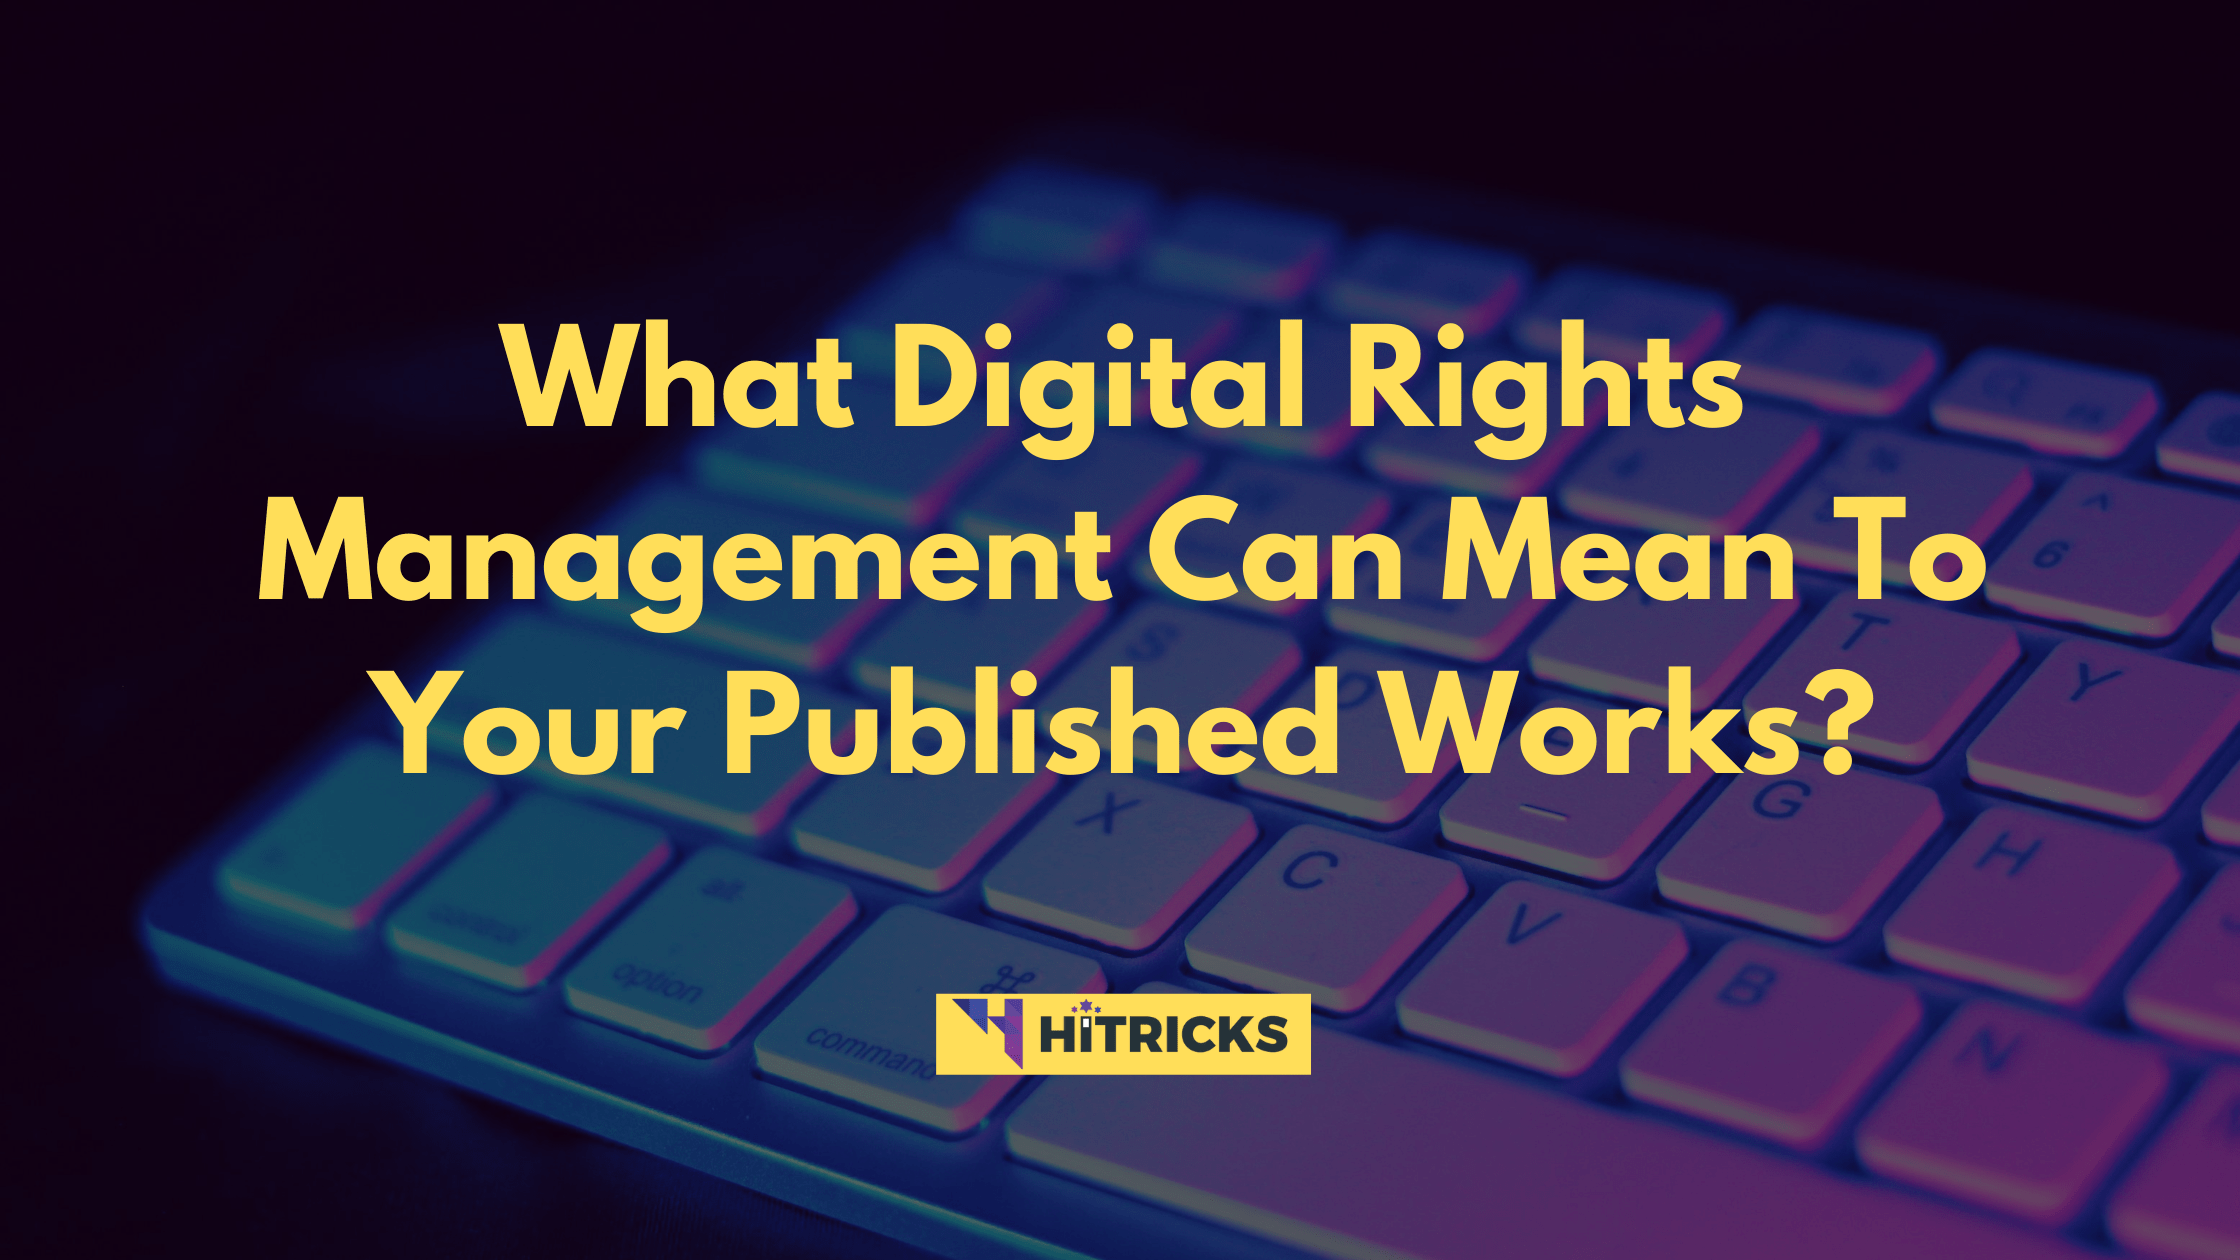 What Digital Rights Management Can Mean To Your Published Works?